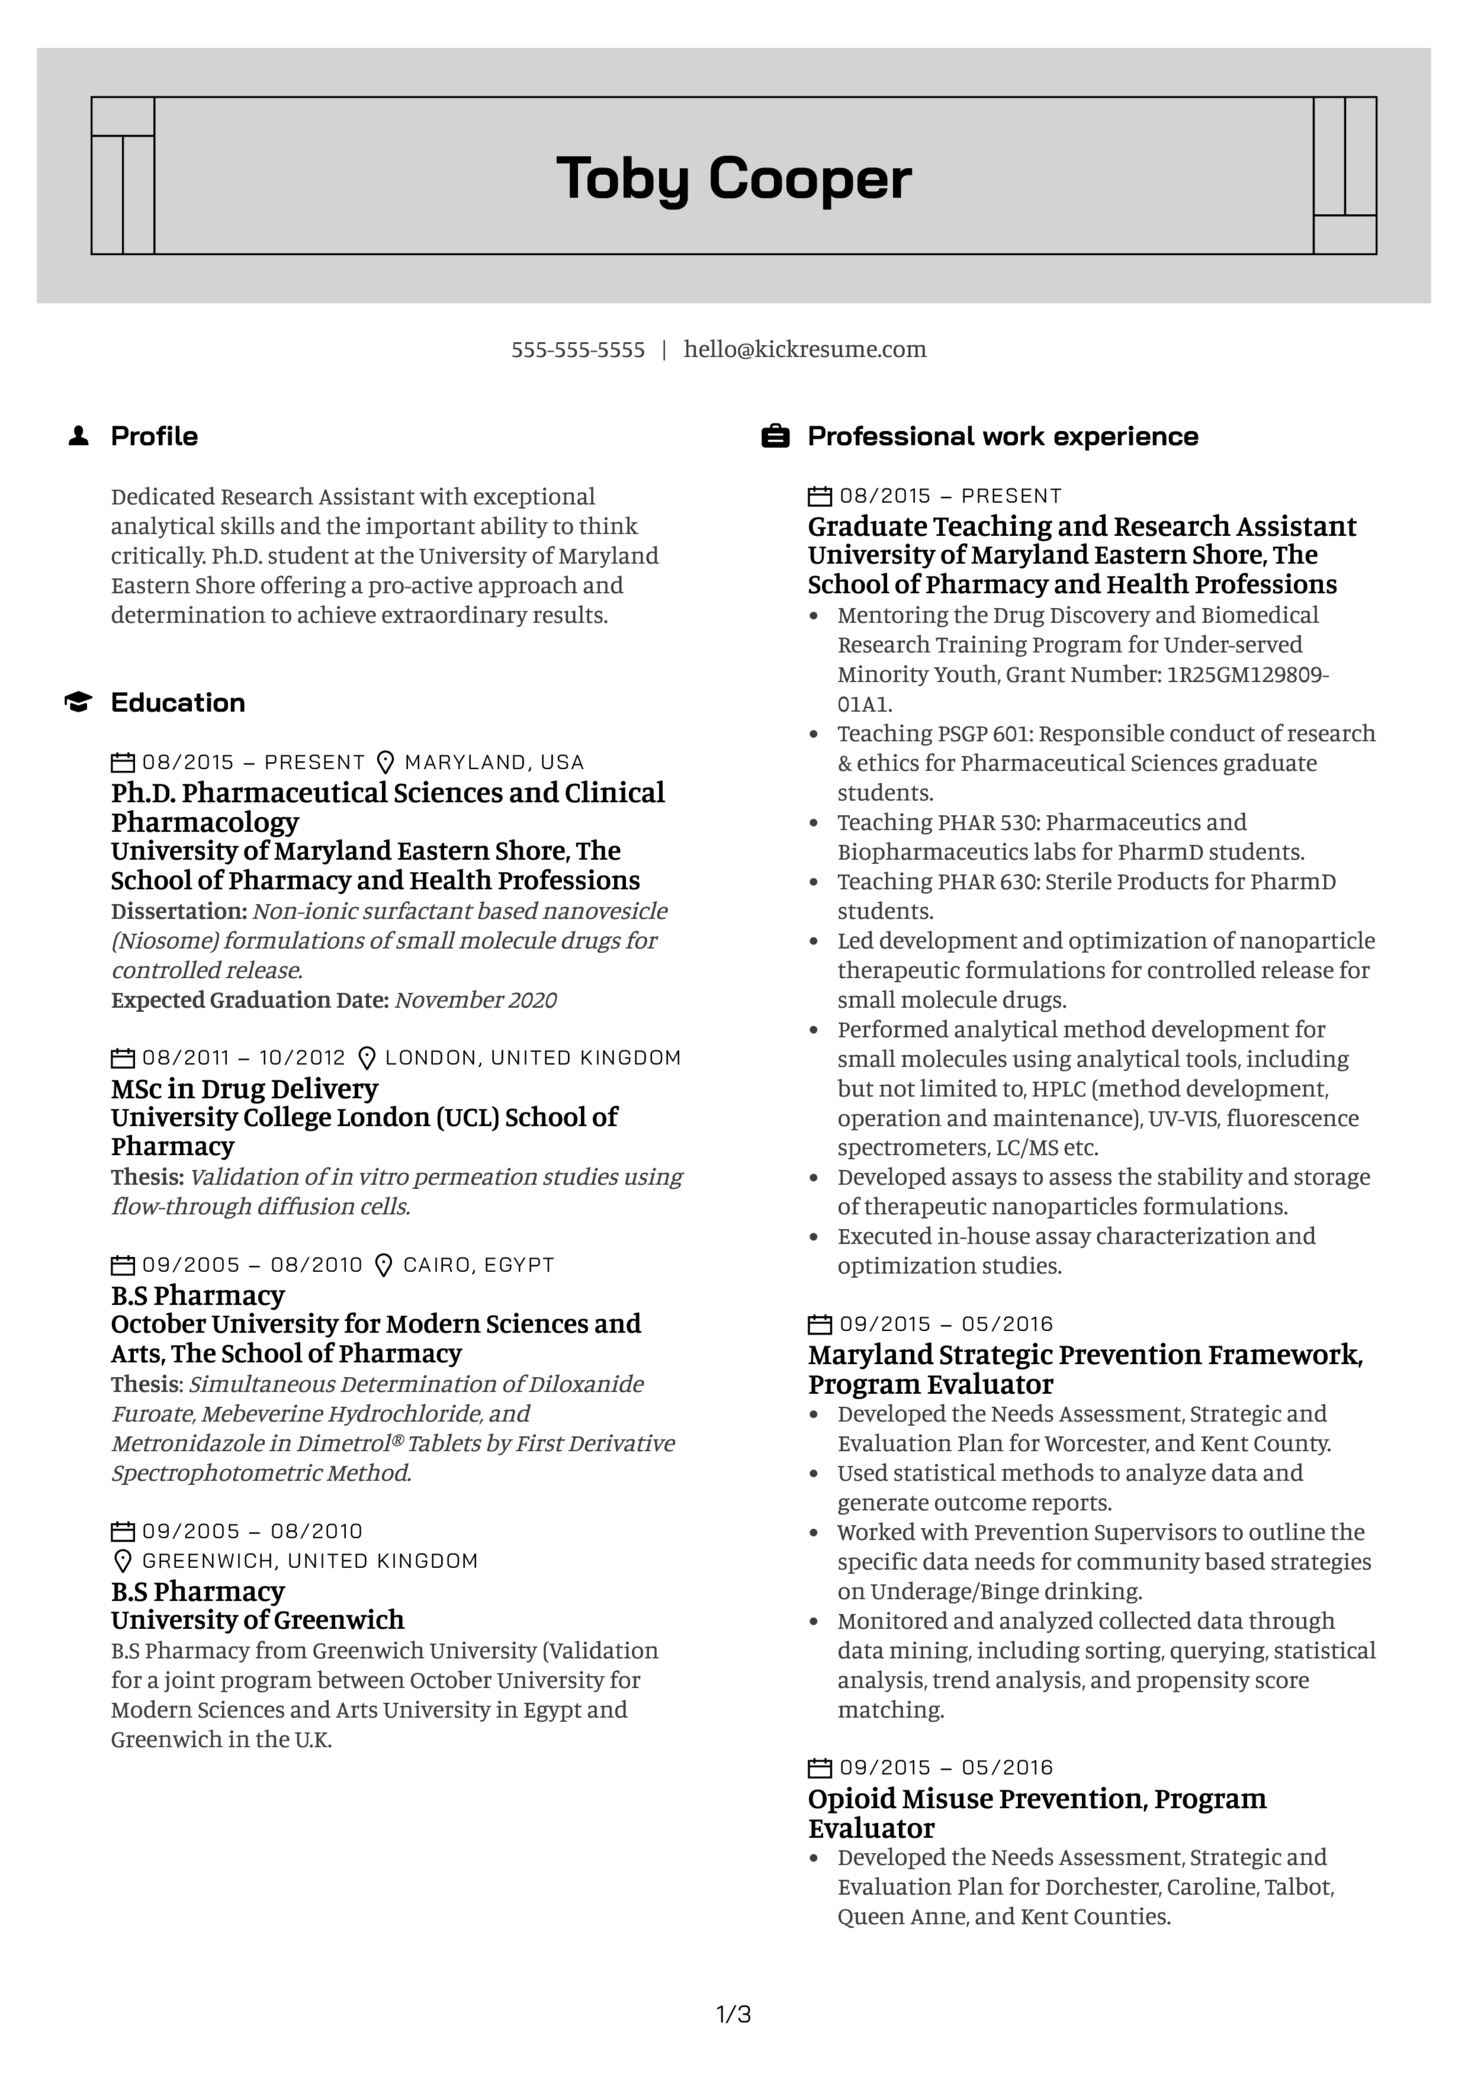 Research Assistant at University of Maryland Eastern Shore Resume Sample (Part 1)